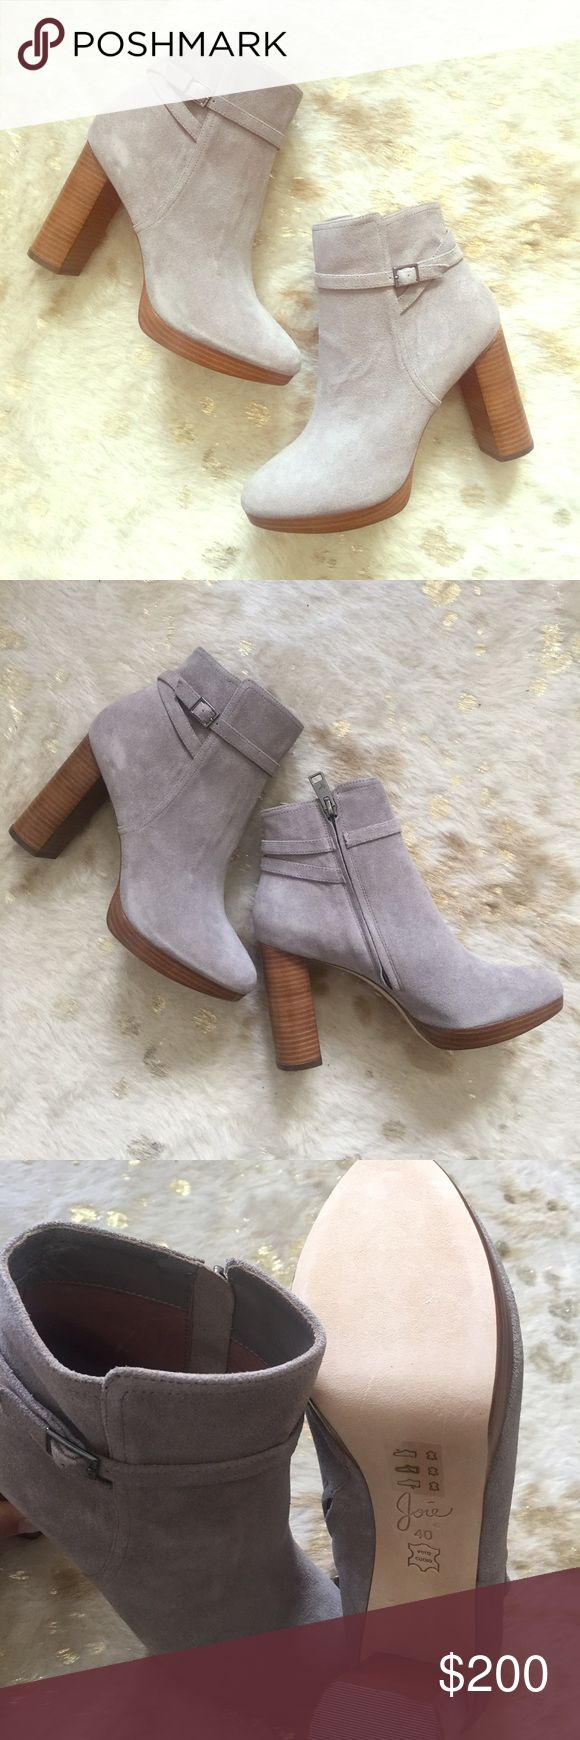 🐩Joie Suede Boots🐩 I can't describe how gorgeous and soft these are! Joie boots style Denez, color Dove (gray). Brand new in box, dust bag and card included. Joie Shoes